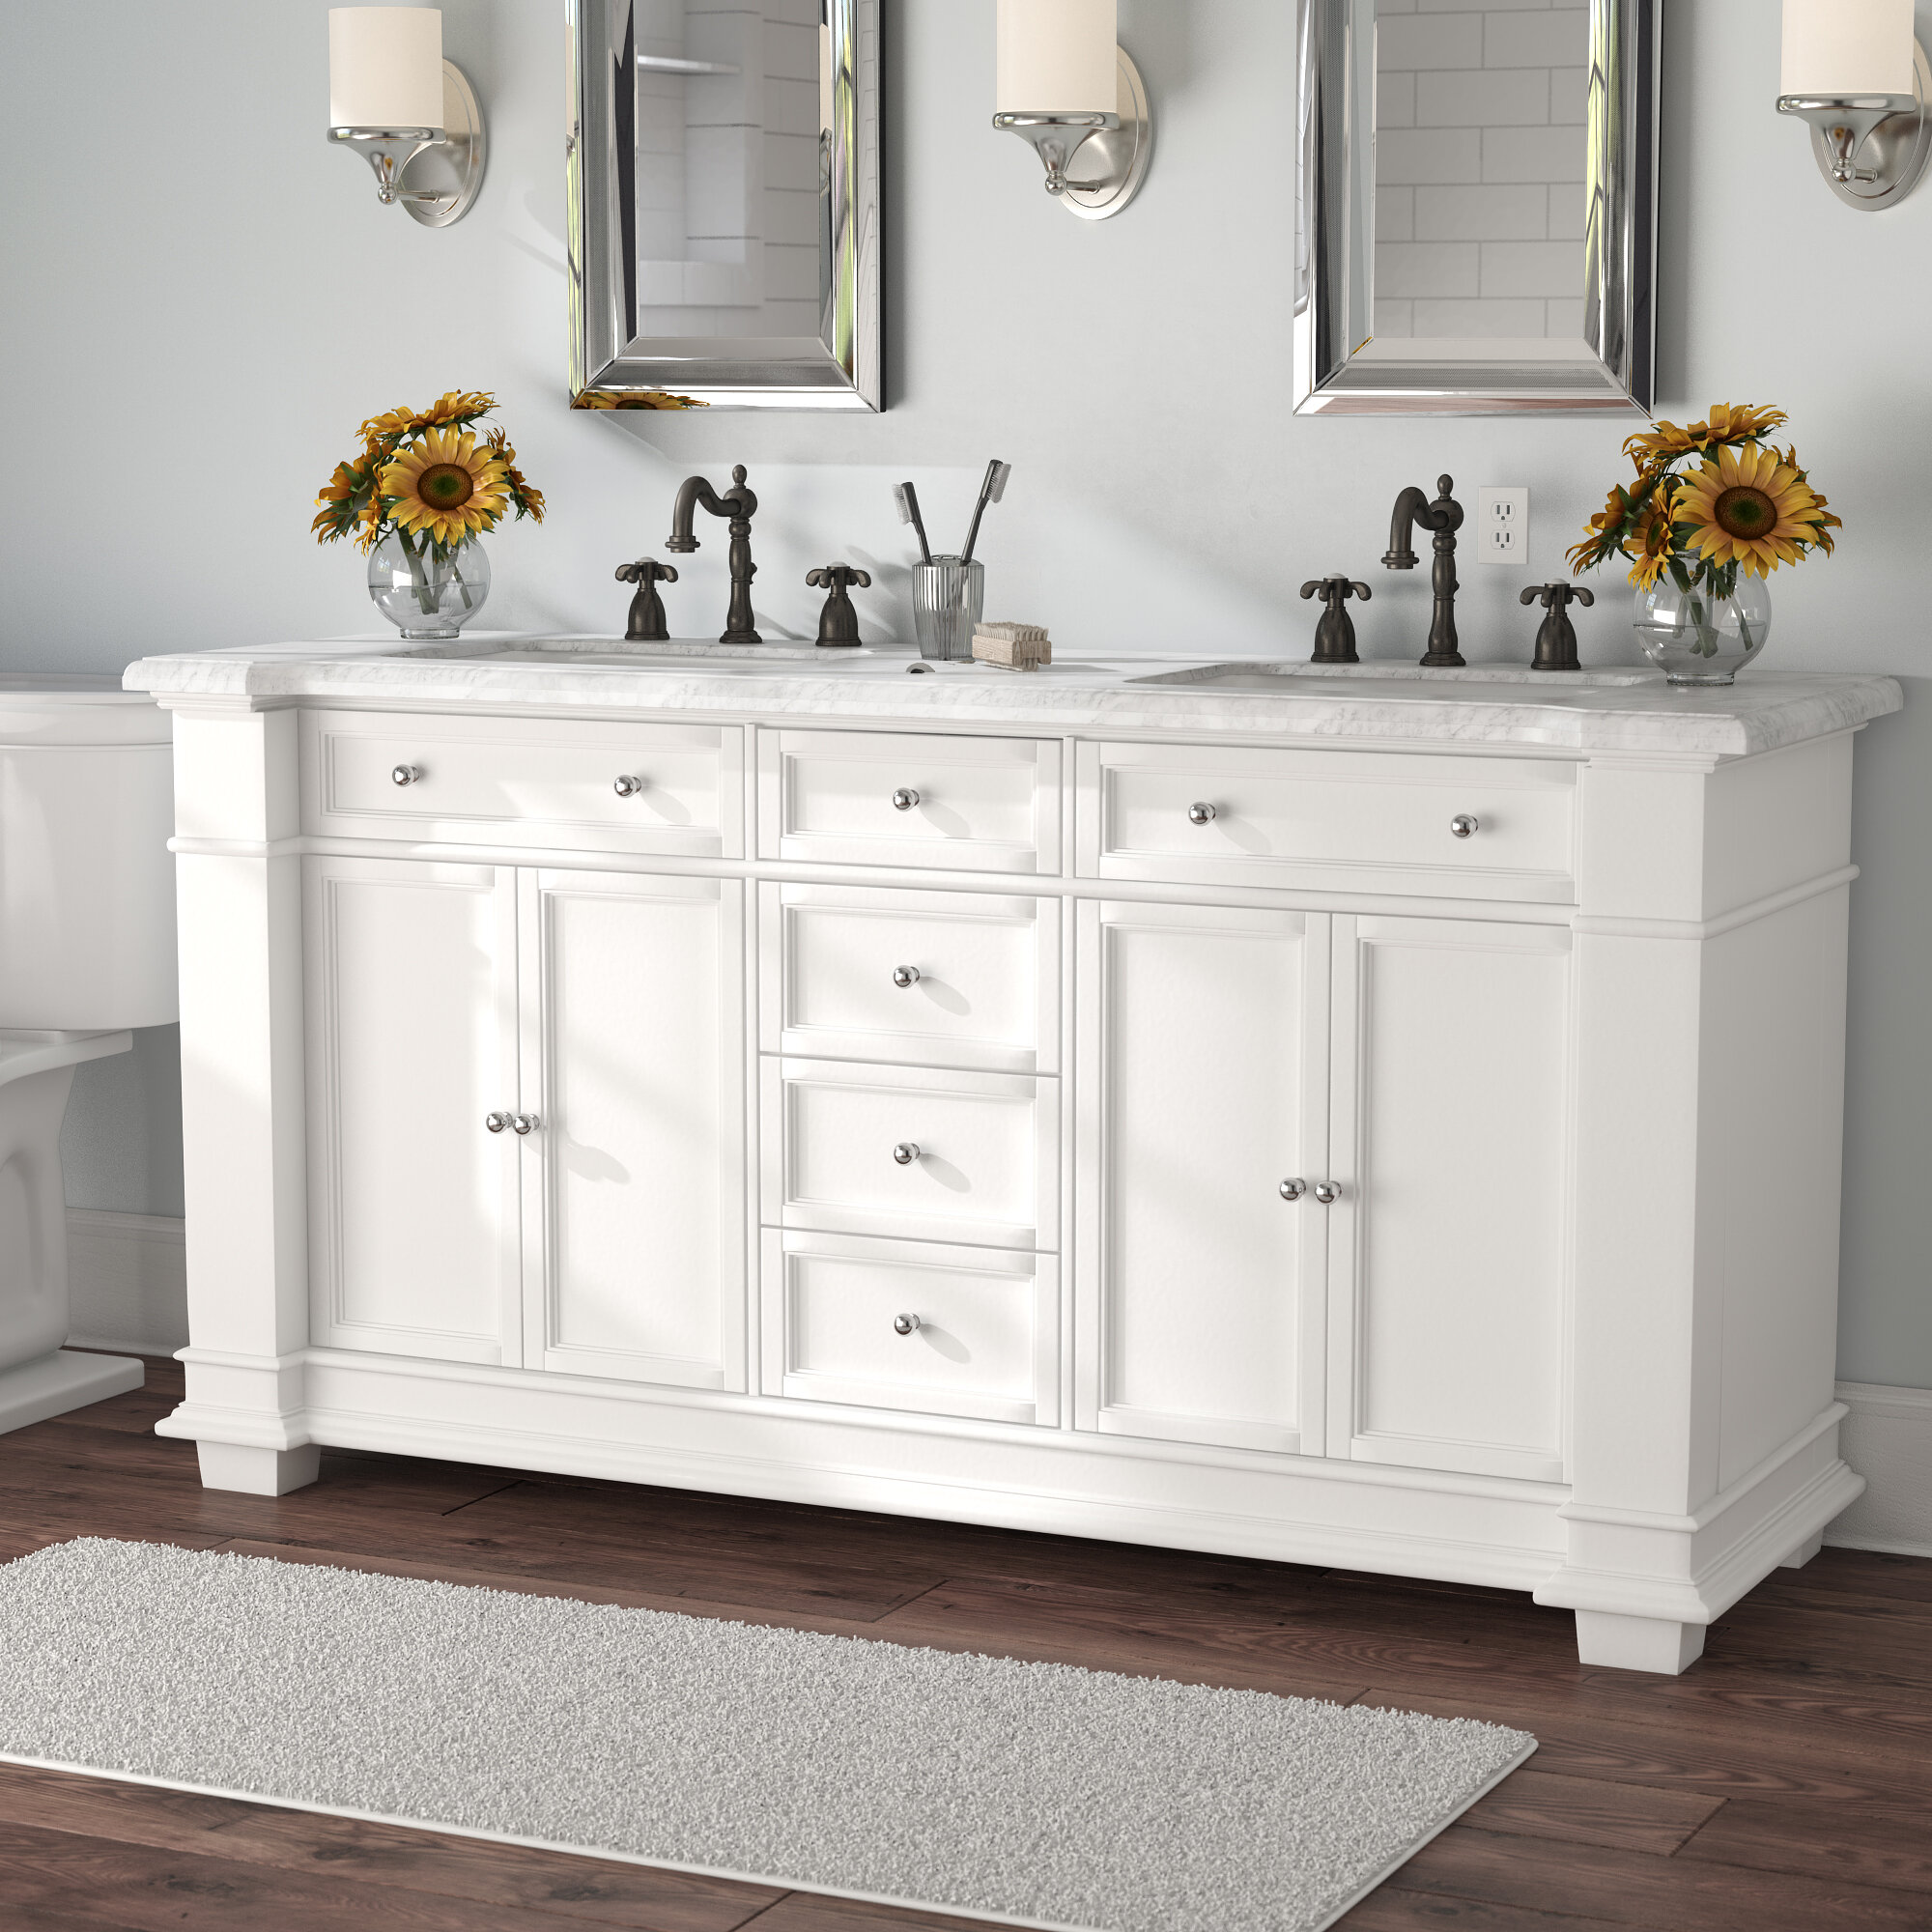 Traditional Bathroom Vanities You Ll Love In 2021 Wayfair